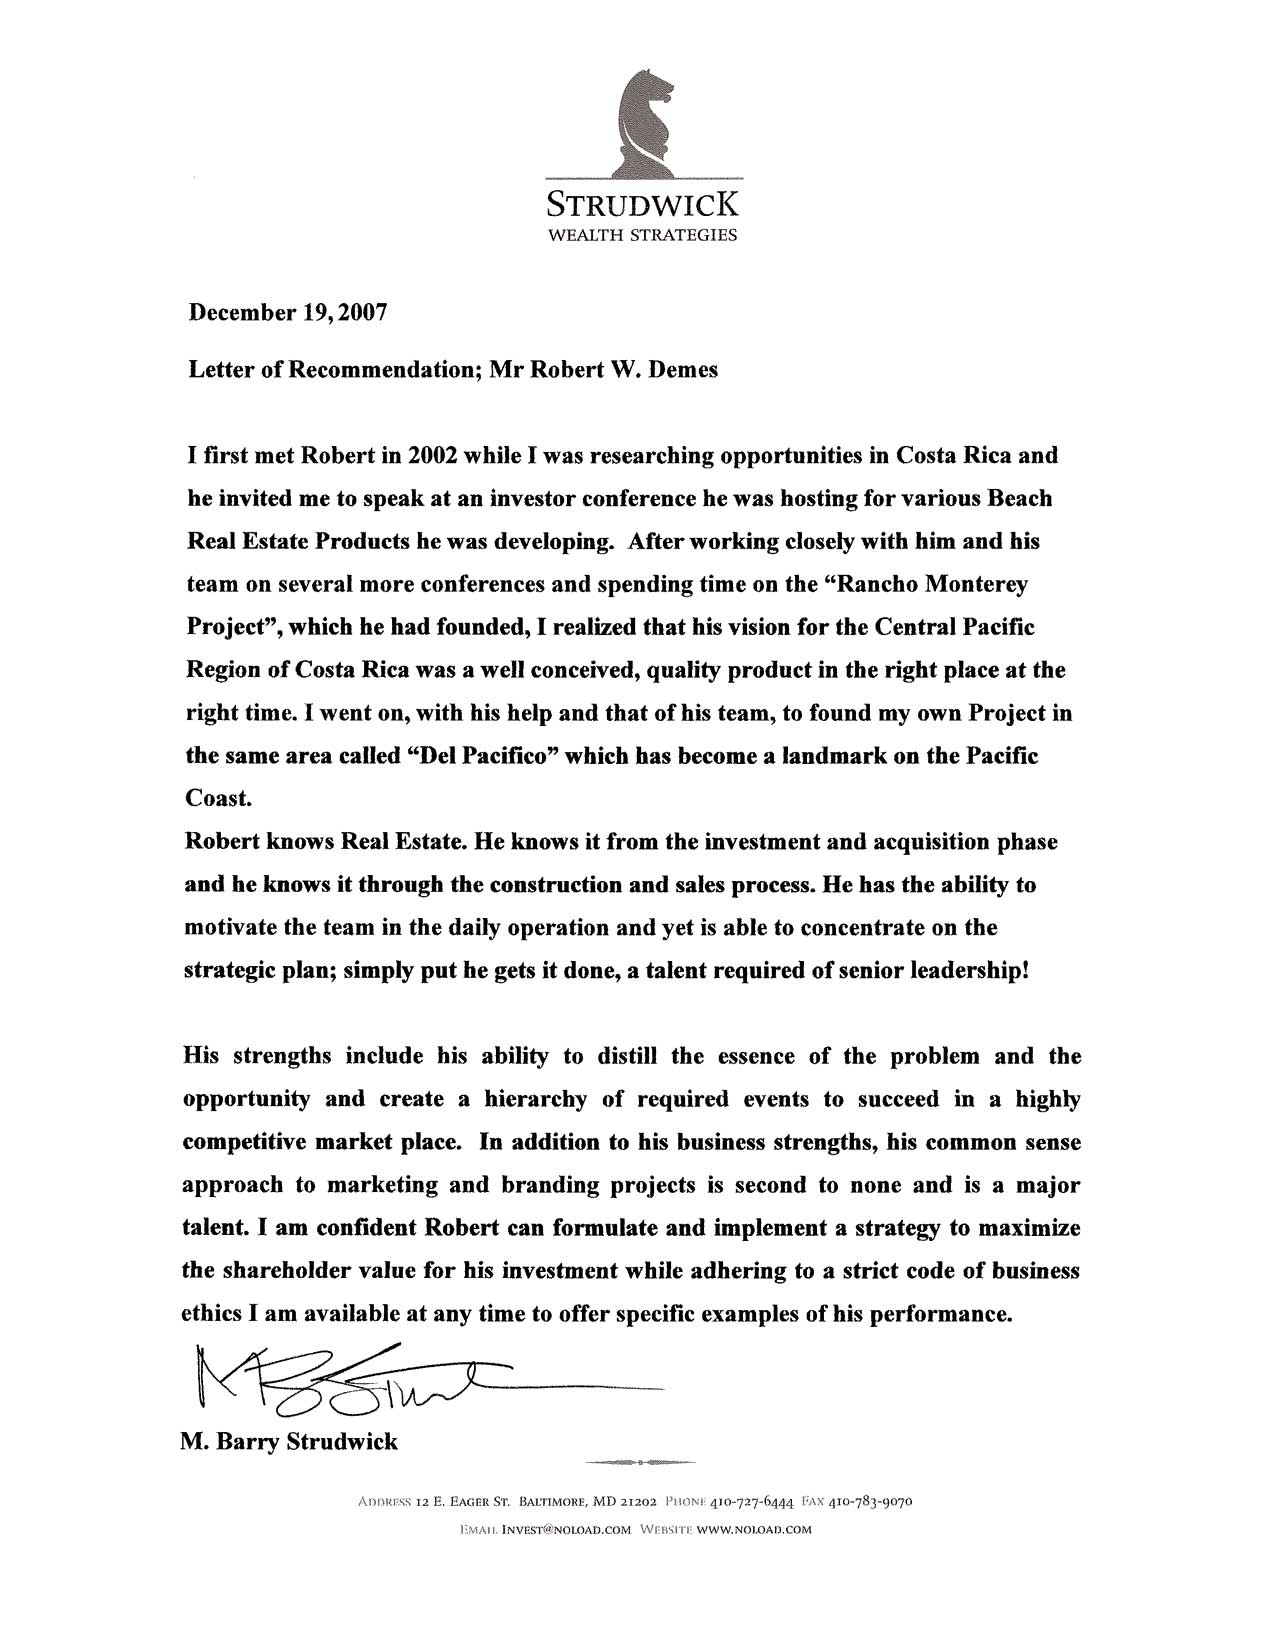 robert demes letter of reference from strudwick wealth strategies click here to see image of actual letter